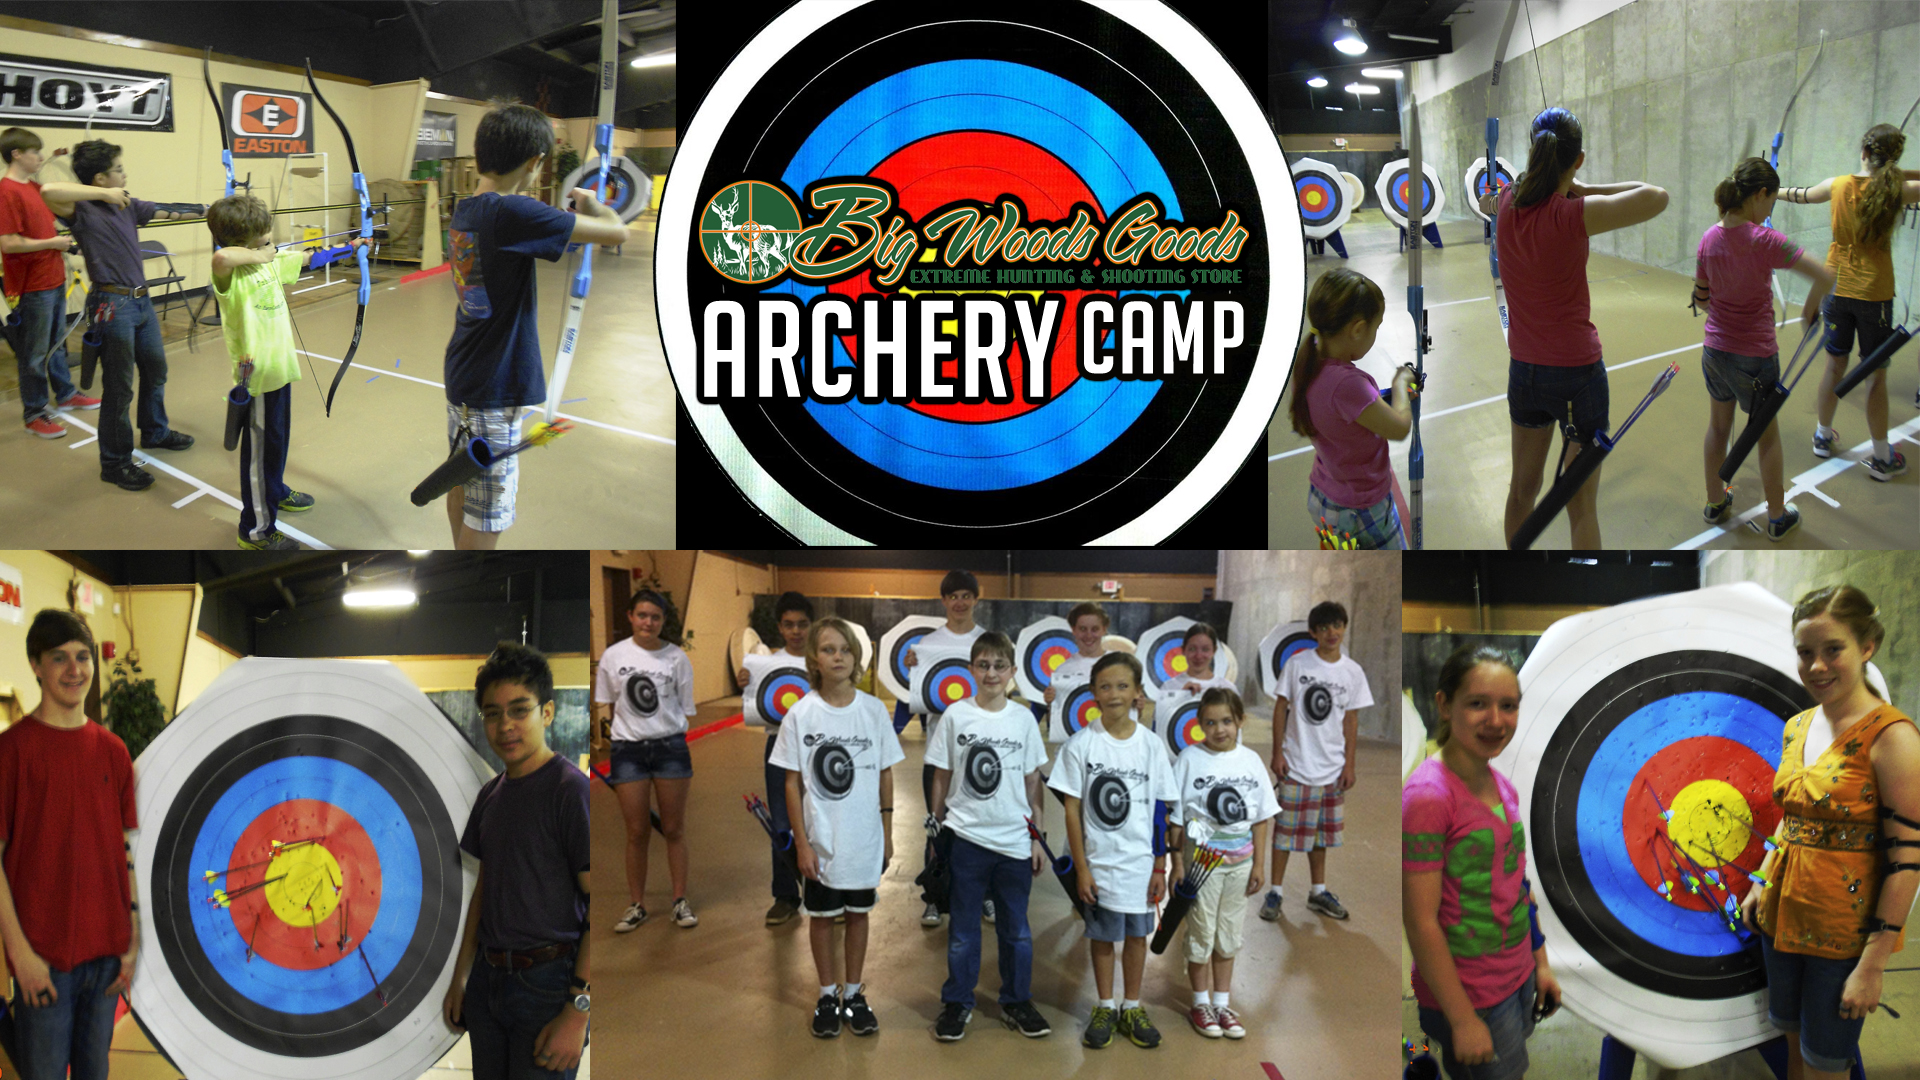 2019 Archery Camp at Big Woods Goods